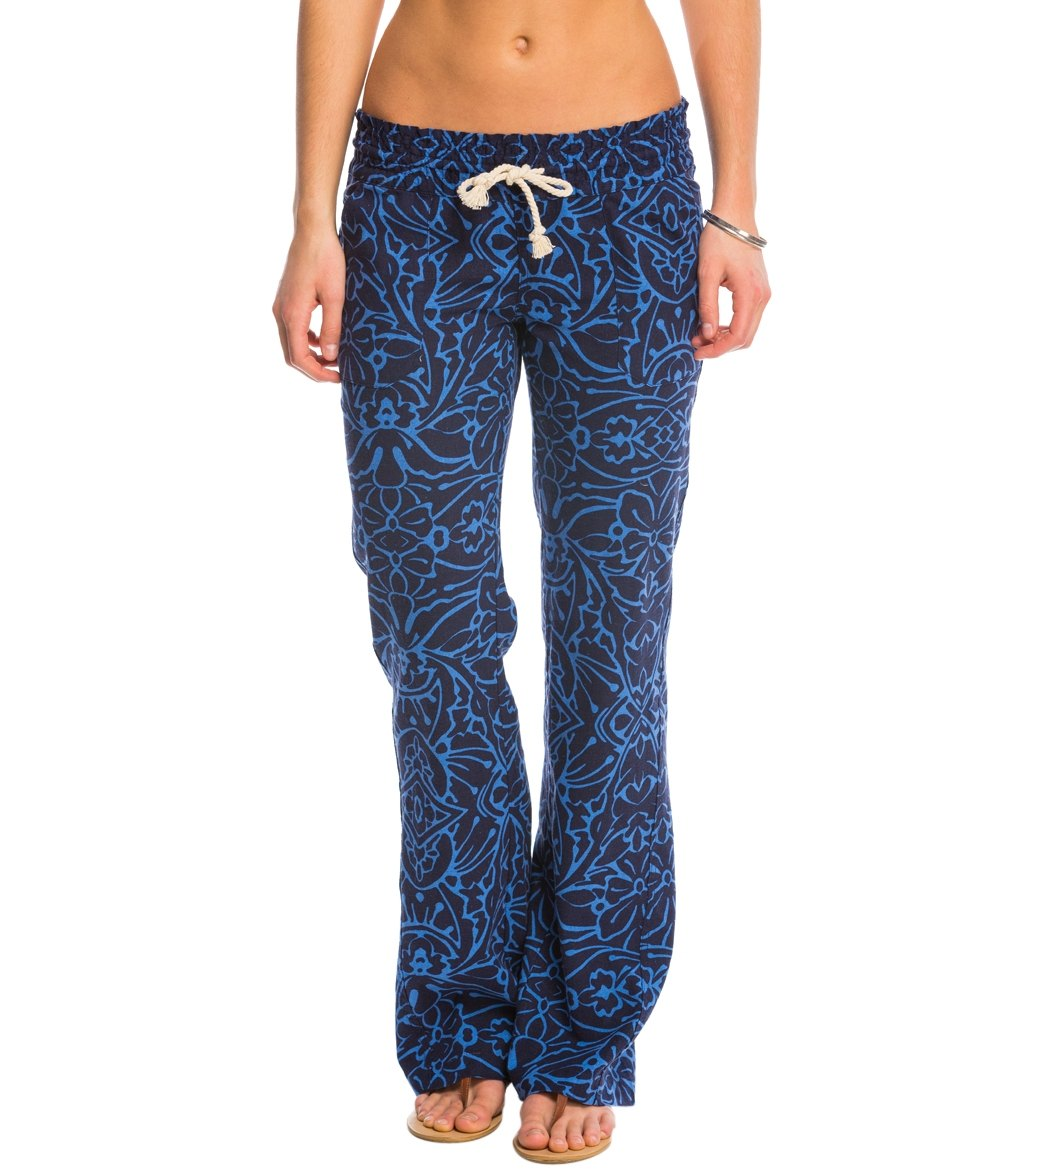 7fc3ac7930 Roxy Oceanside Print Beach Pant at SwimOutlet.com